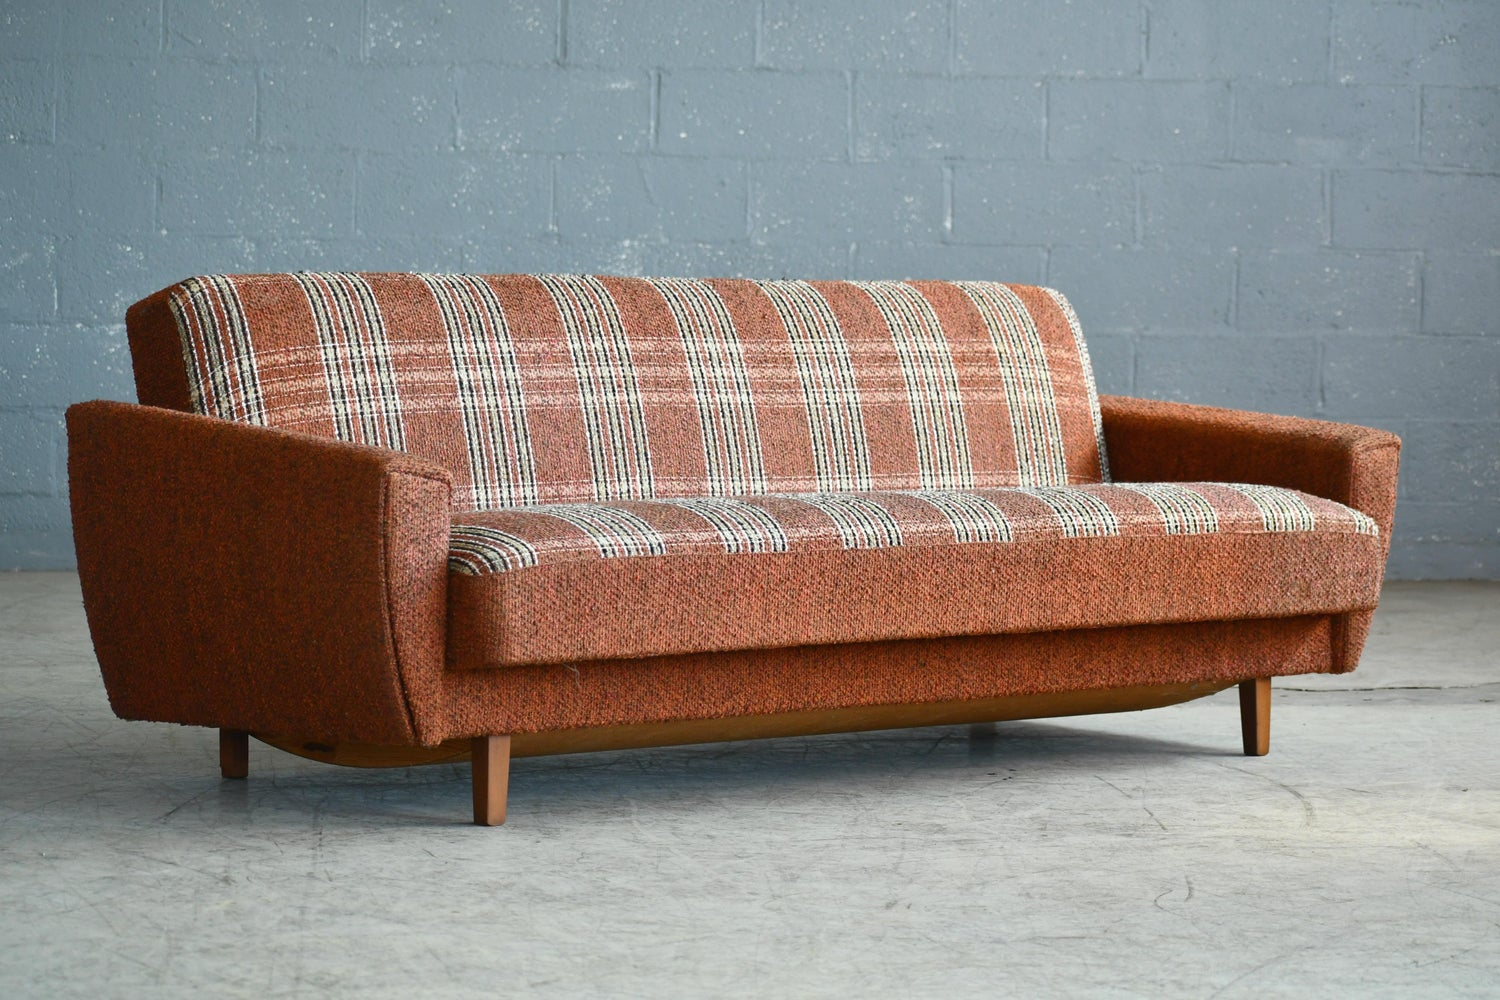 1960s Extendable Daybed Or Sleeper Sofa